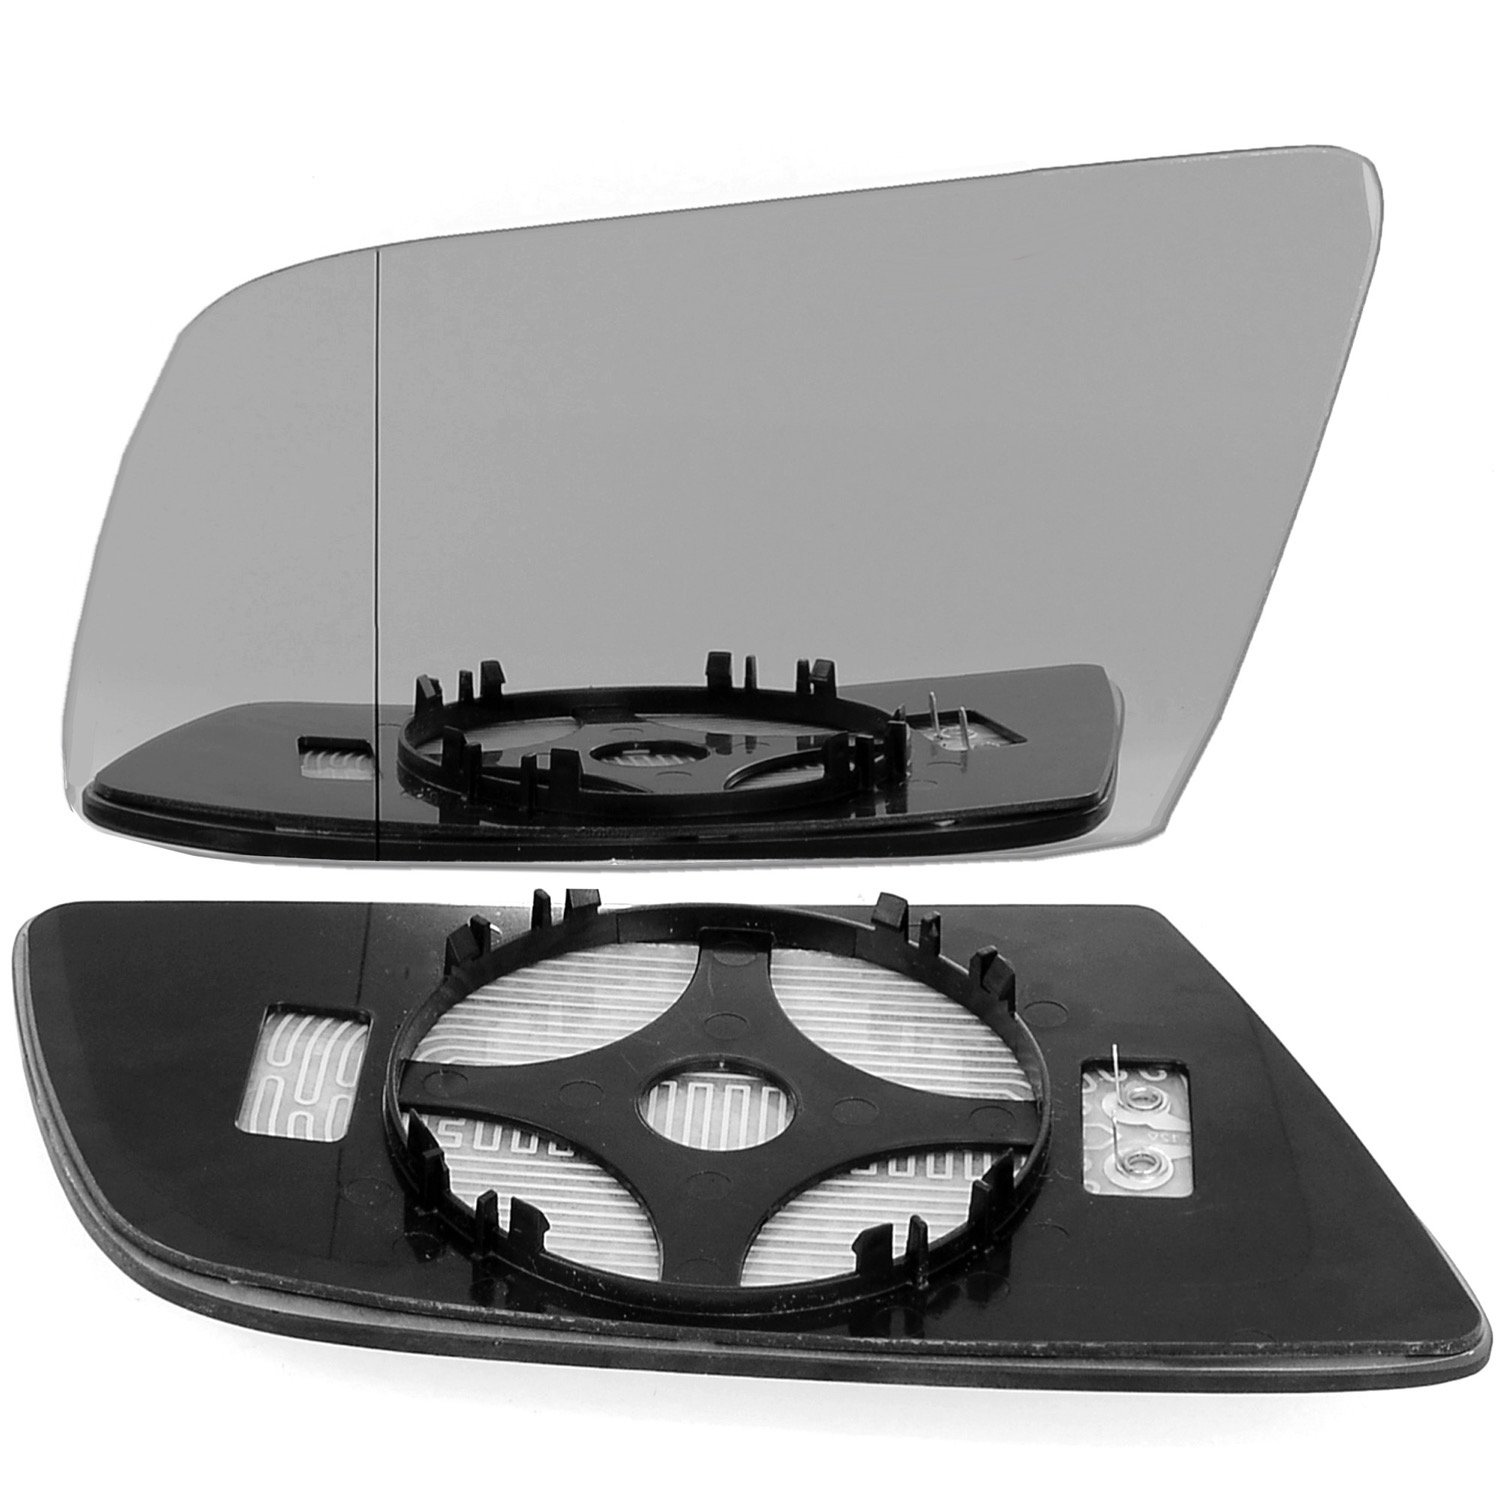 Left passegner side wing door clip mirror glass E60 E61 E63 E64 Wide Angle Heated # BME60/HY0-2010793/590 Less4Spares